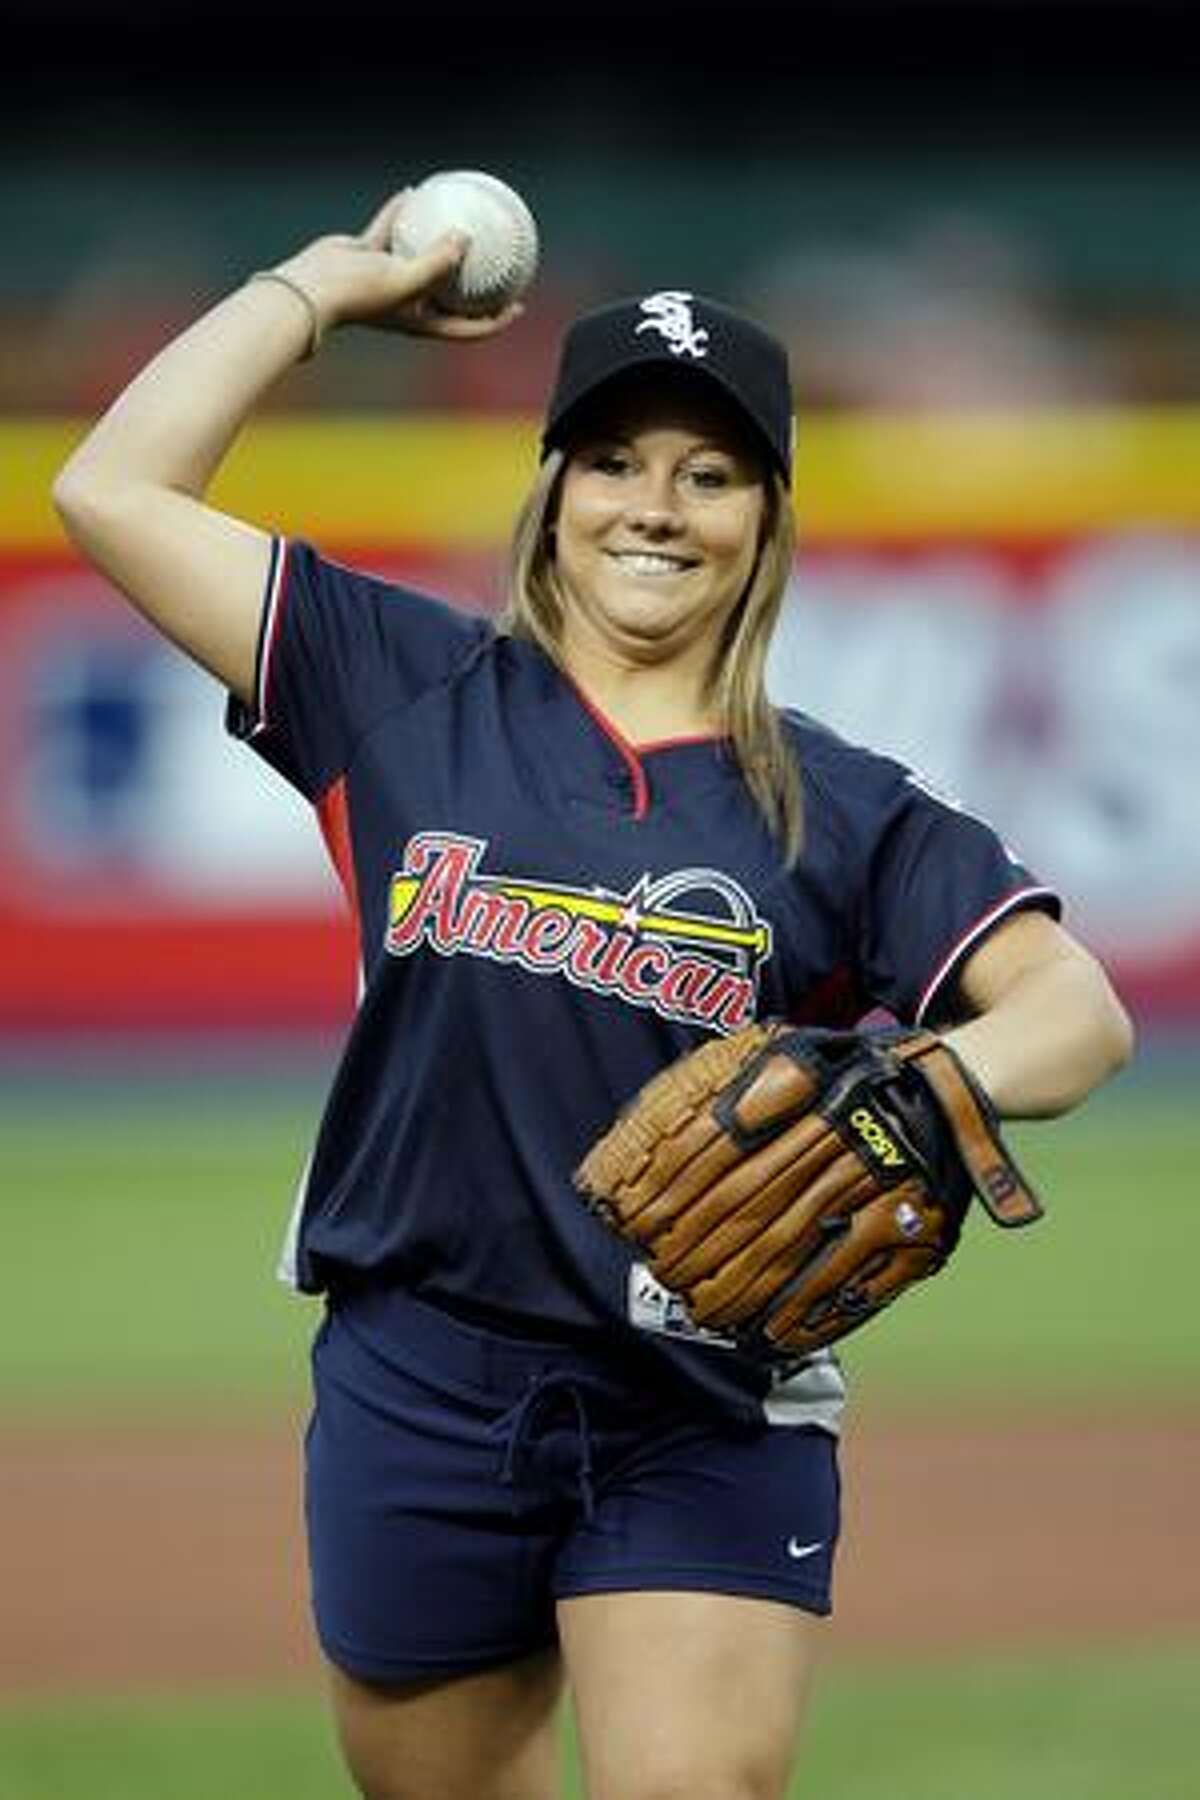 U.S. Olympian Shawn Johnson warms up prior to the game.